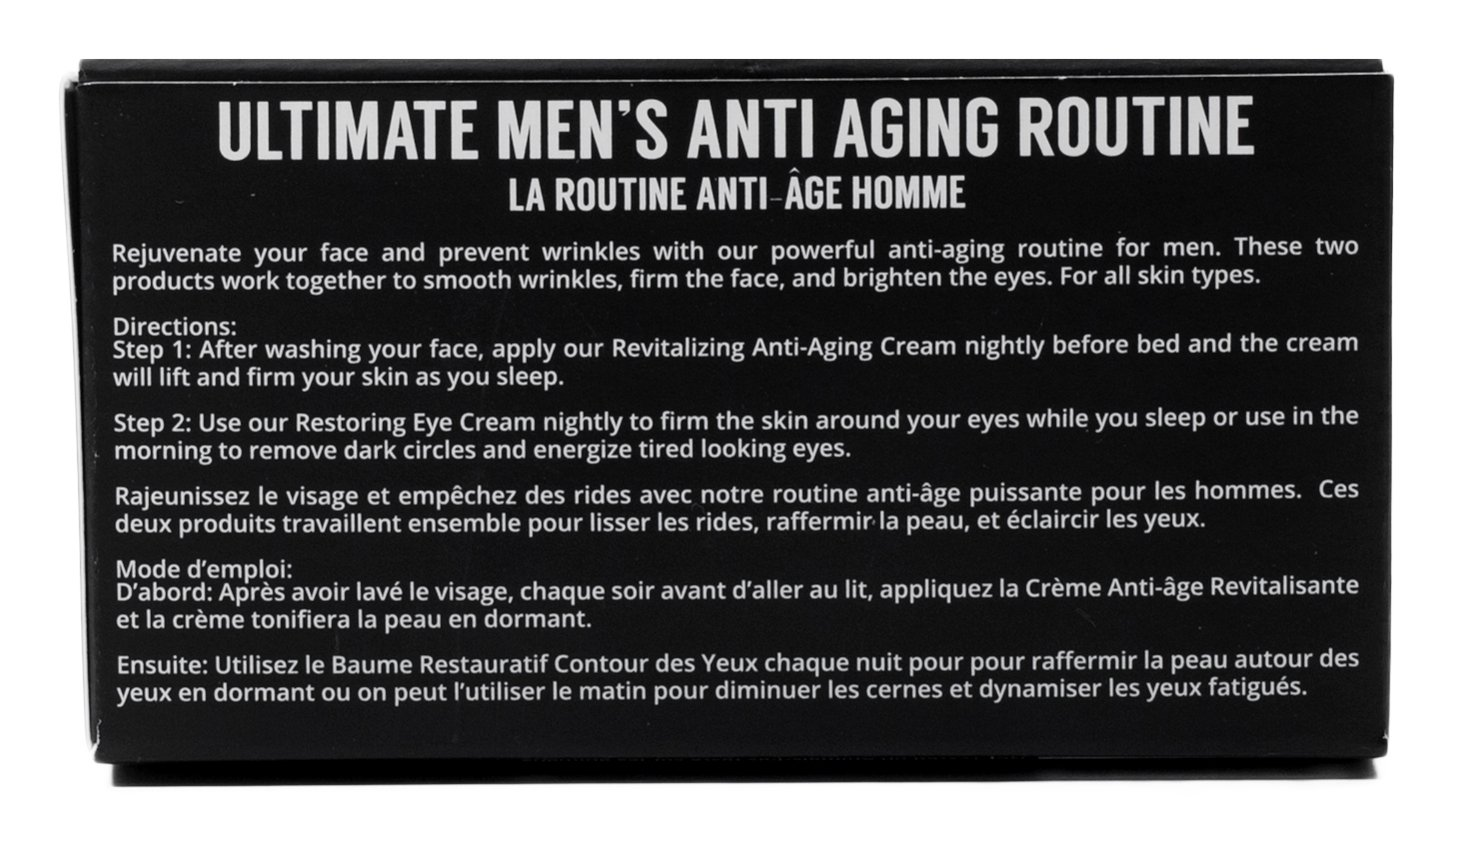 Brickell Men's Ultimate Anti-Aging Routine - Anti-Wrinkle Night Face Cream and Eye Cream to Reduce Puffiness, Wrinkles, Dark Circles, Under Eye Bags - Natural & Organic (Scented) by Brickell Men's Products (Image #6)